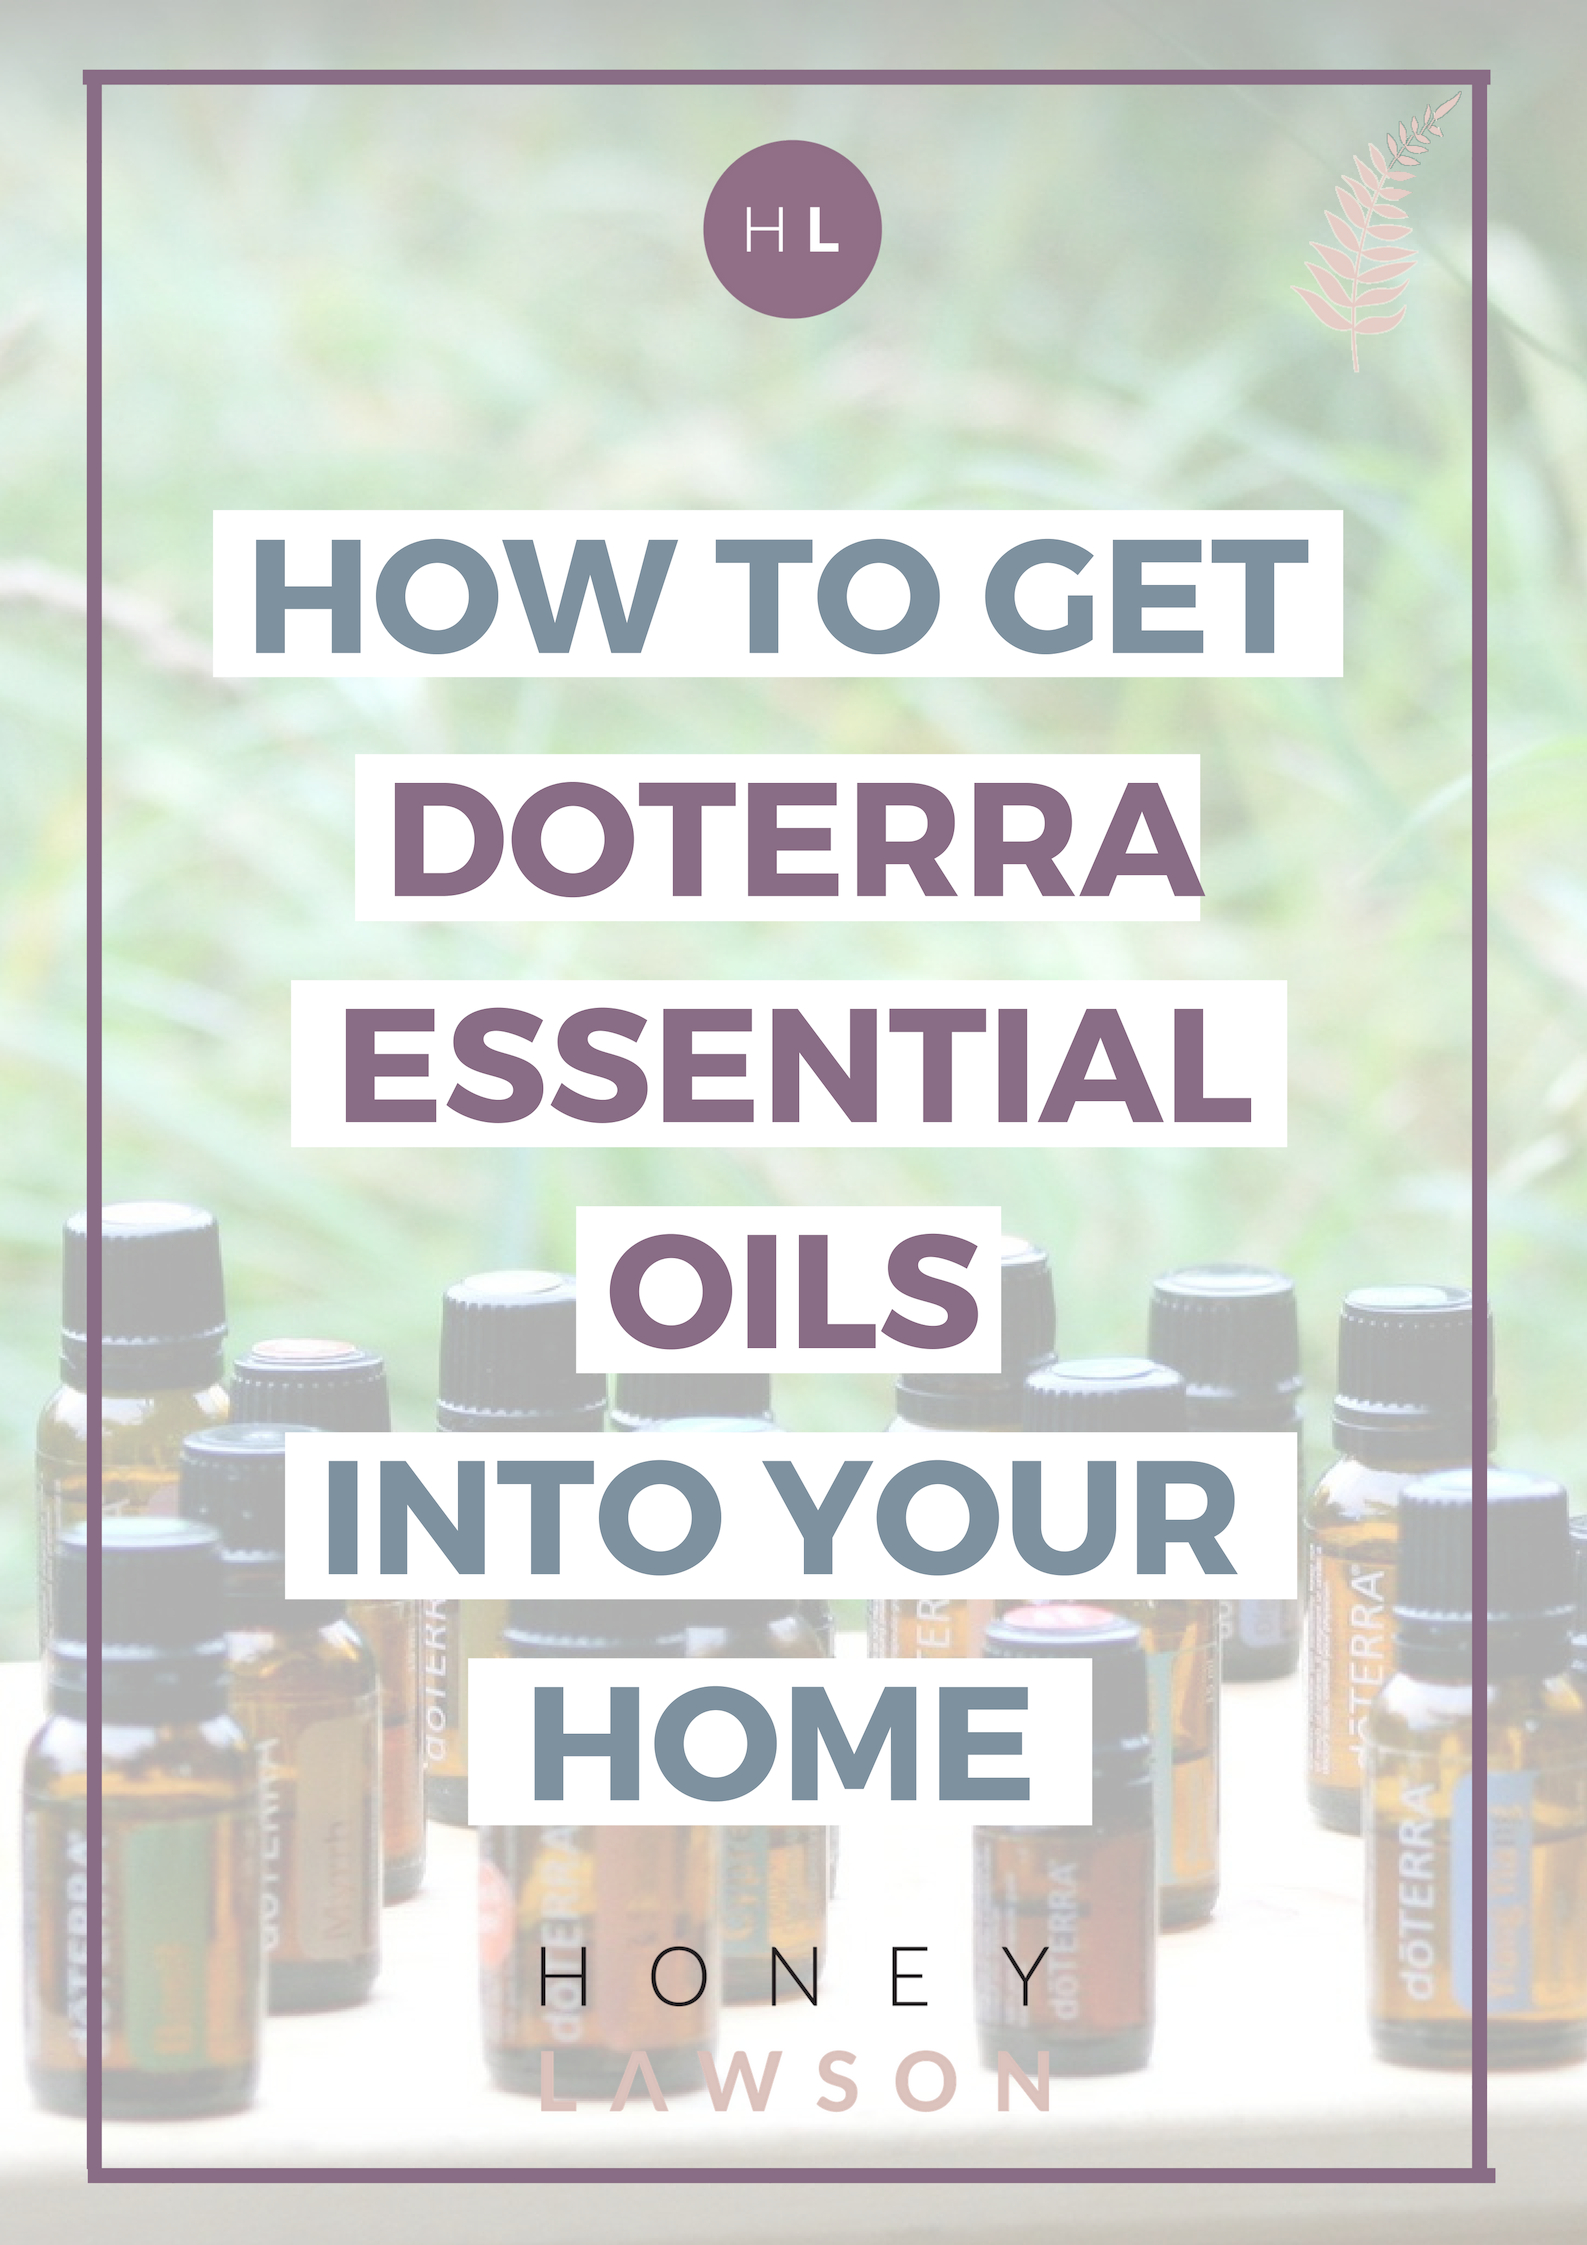 get doterra oils into your home